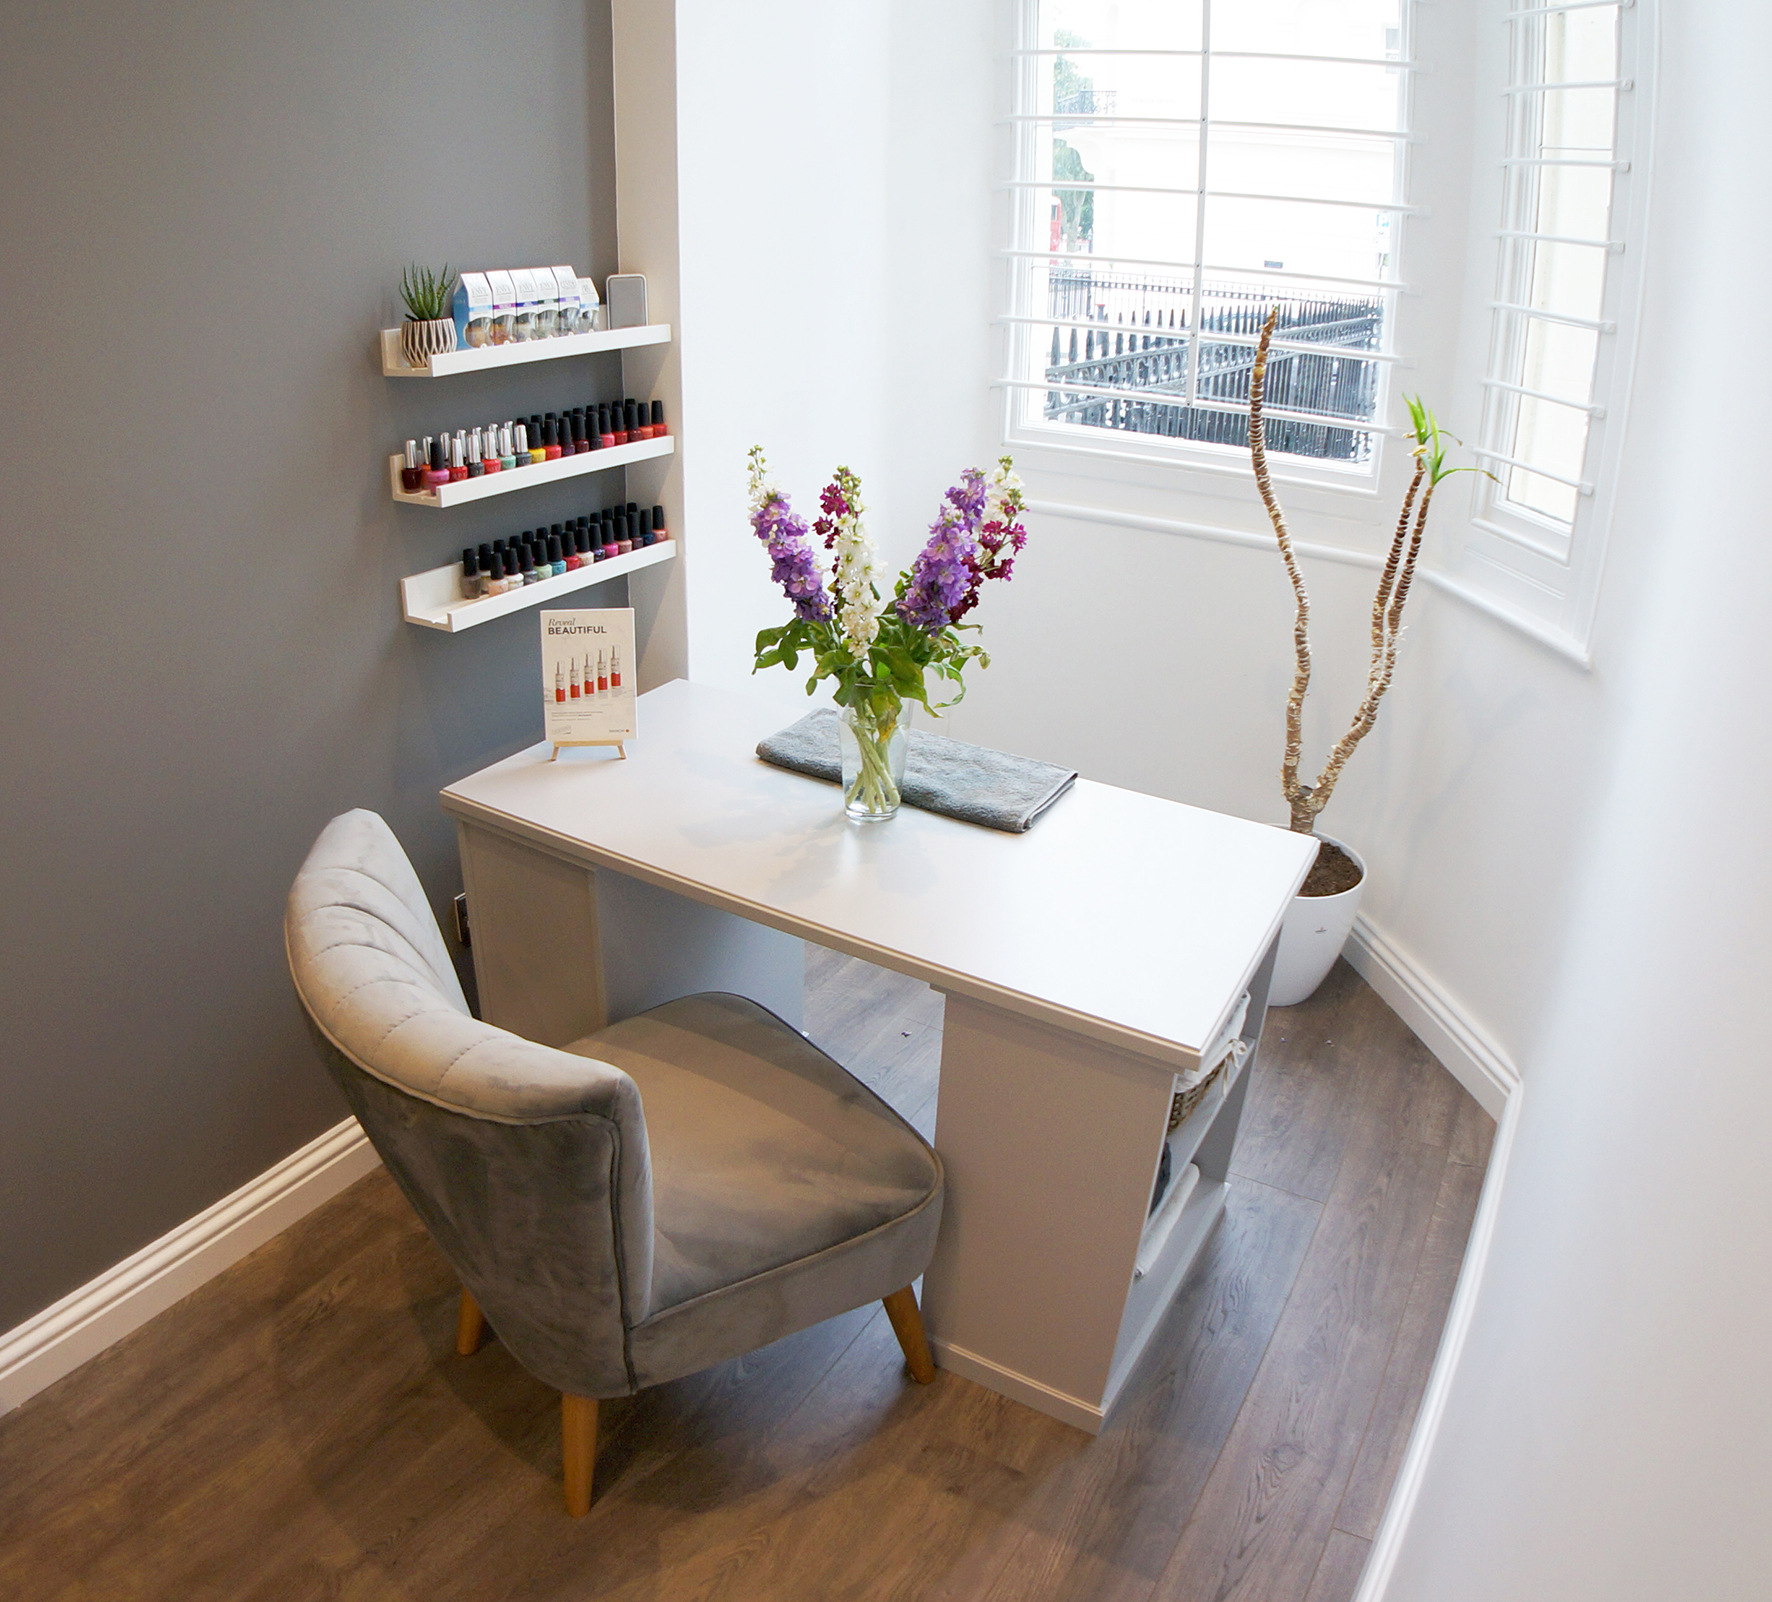 The Beauty Place - Nail Treatment Station